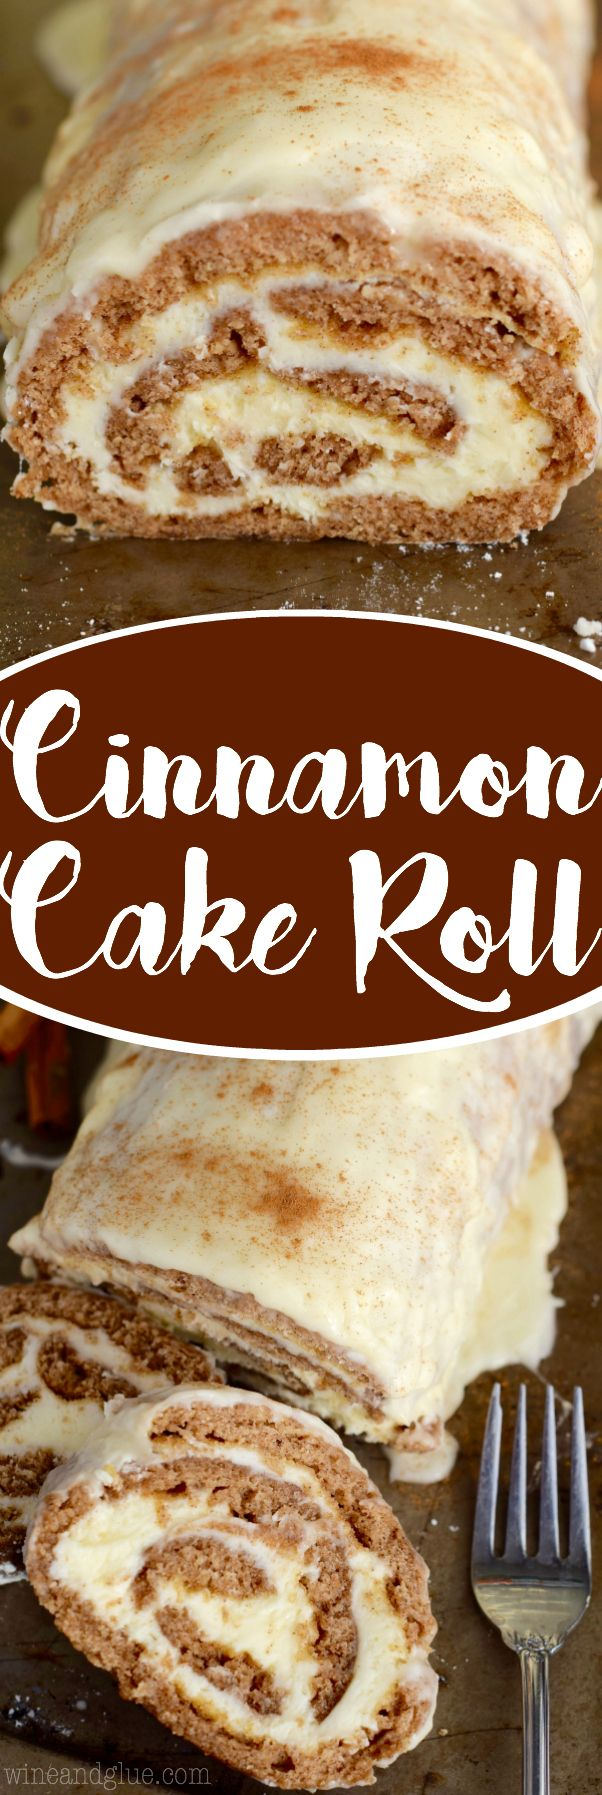 This Cinnamon Cake Roll is packed with amazing flavor and rolled up with the smoothest buttercream frosting and the smothered in an amazing glaze! Such a show stopper!: